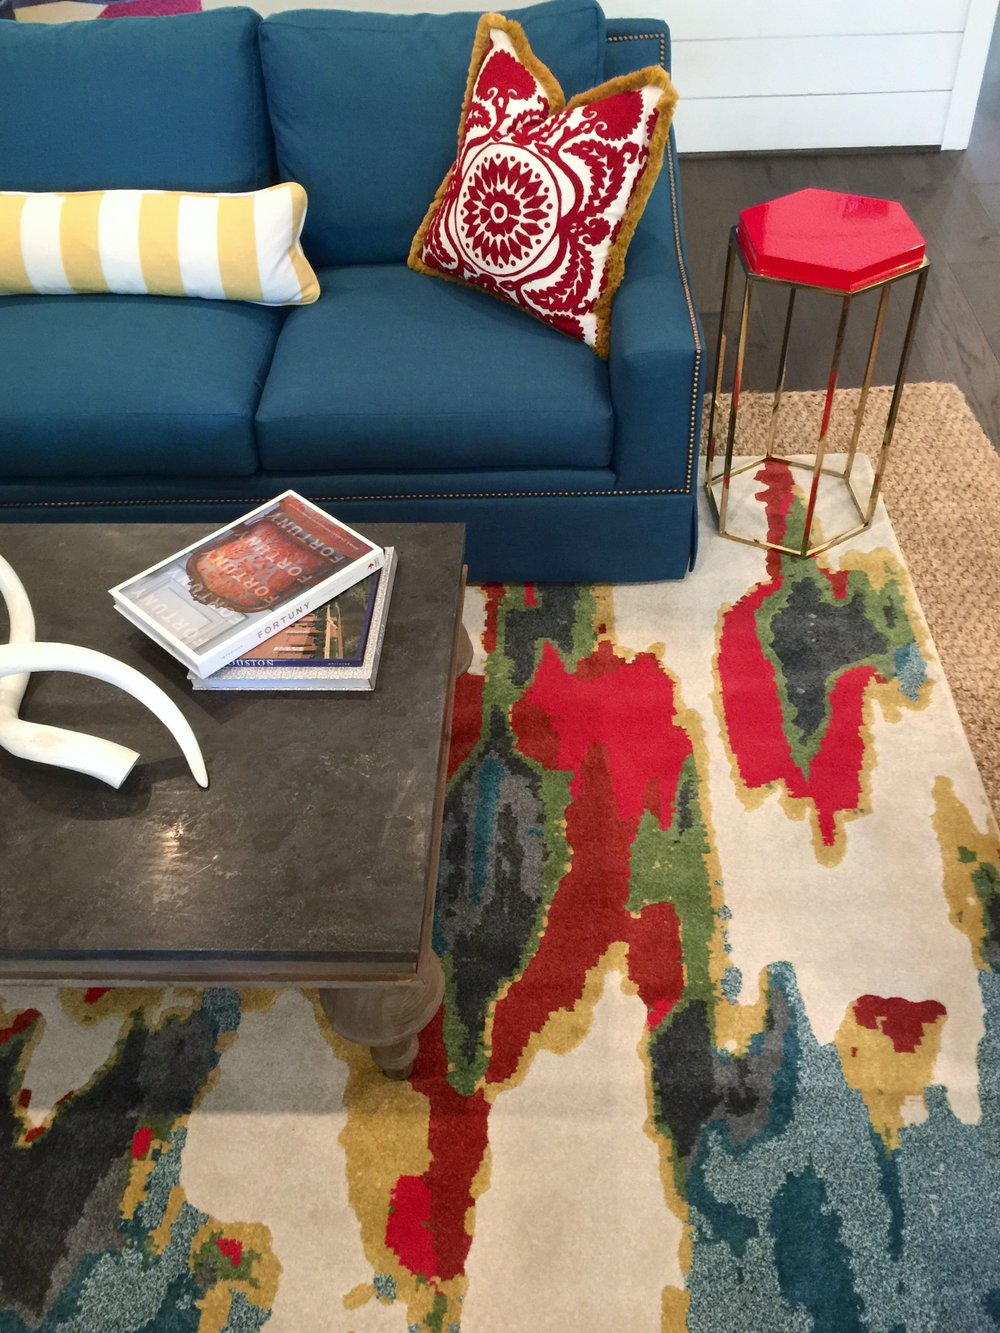 Southern Living Showcase Home - Living Room with colorful rug and furniture